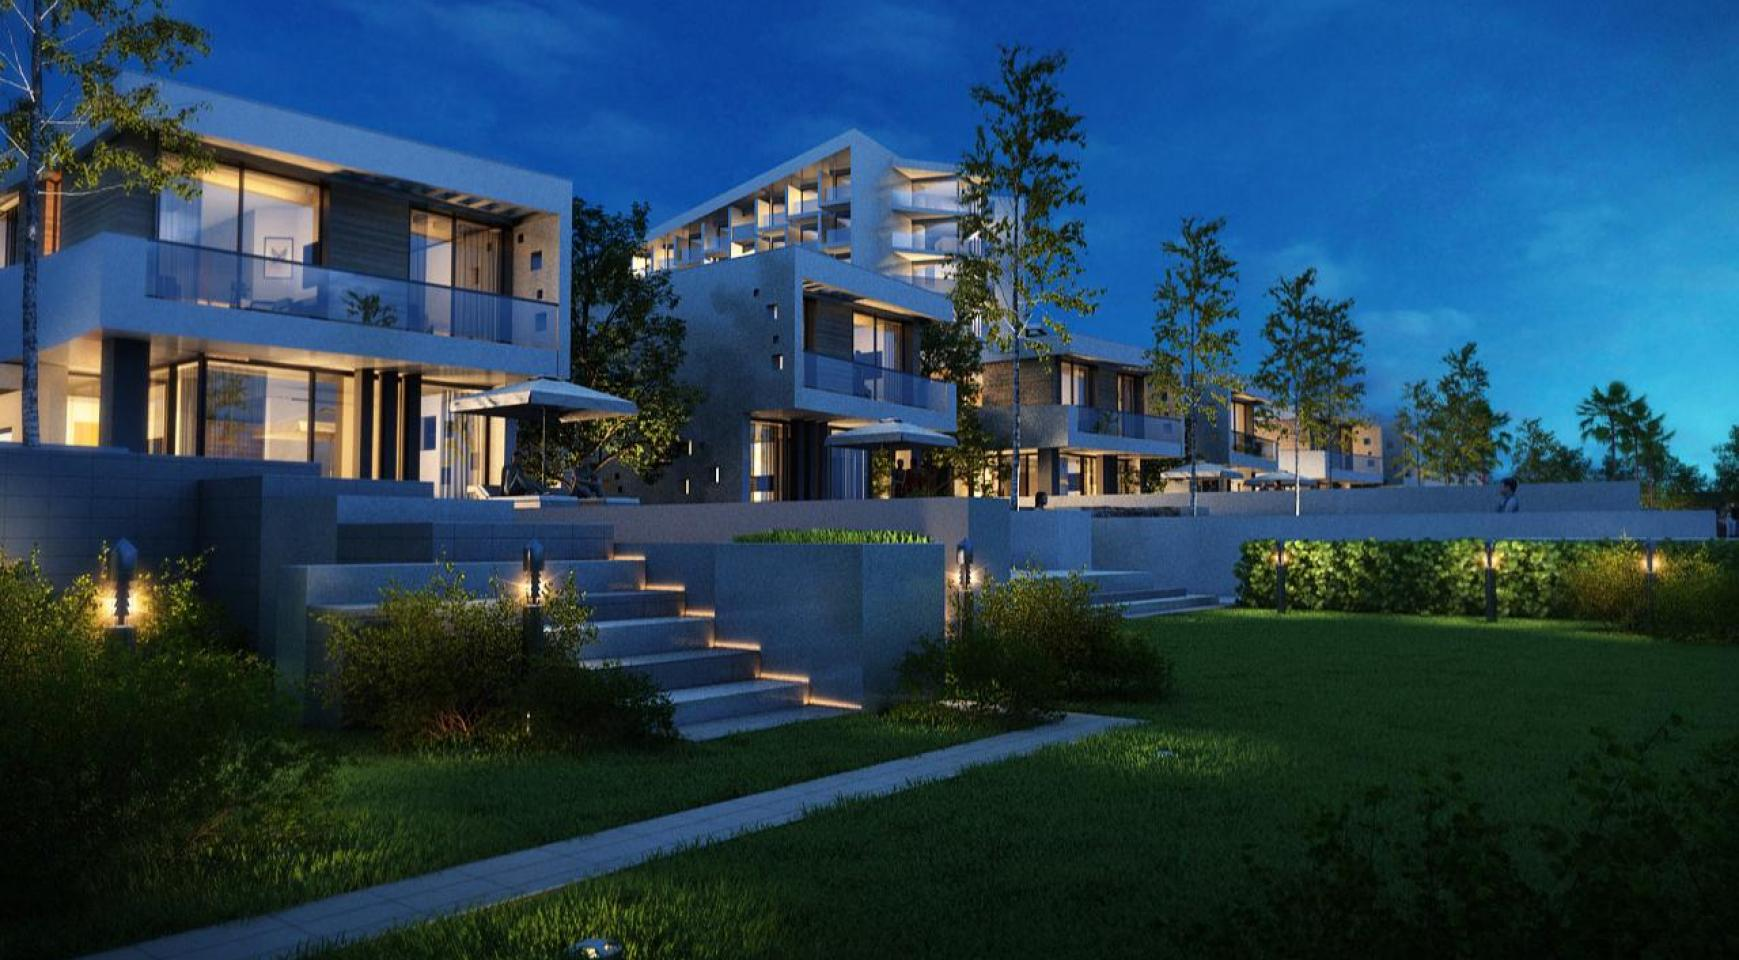 Contemporary 4 Bedroom Villa in a New Project by the Sea - 2